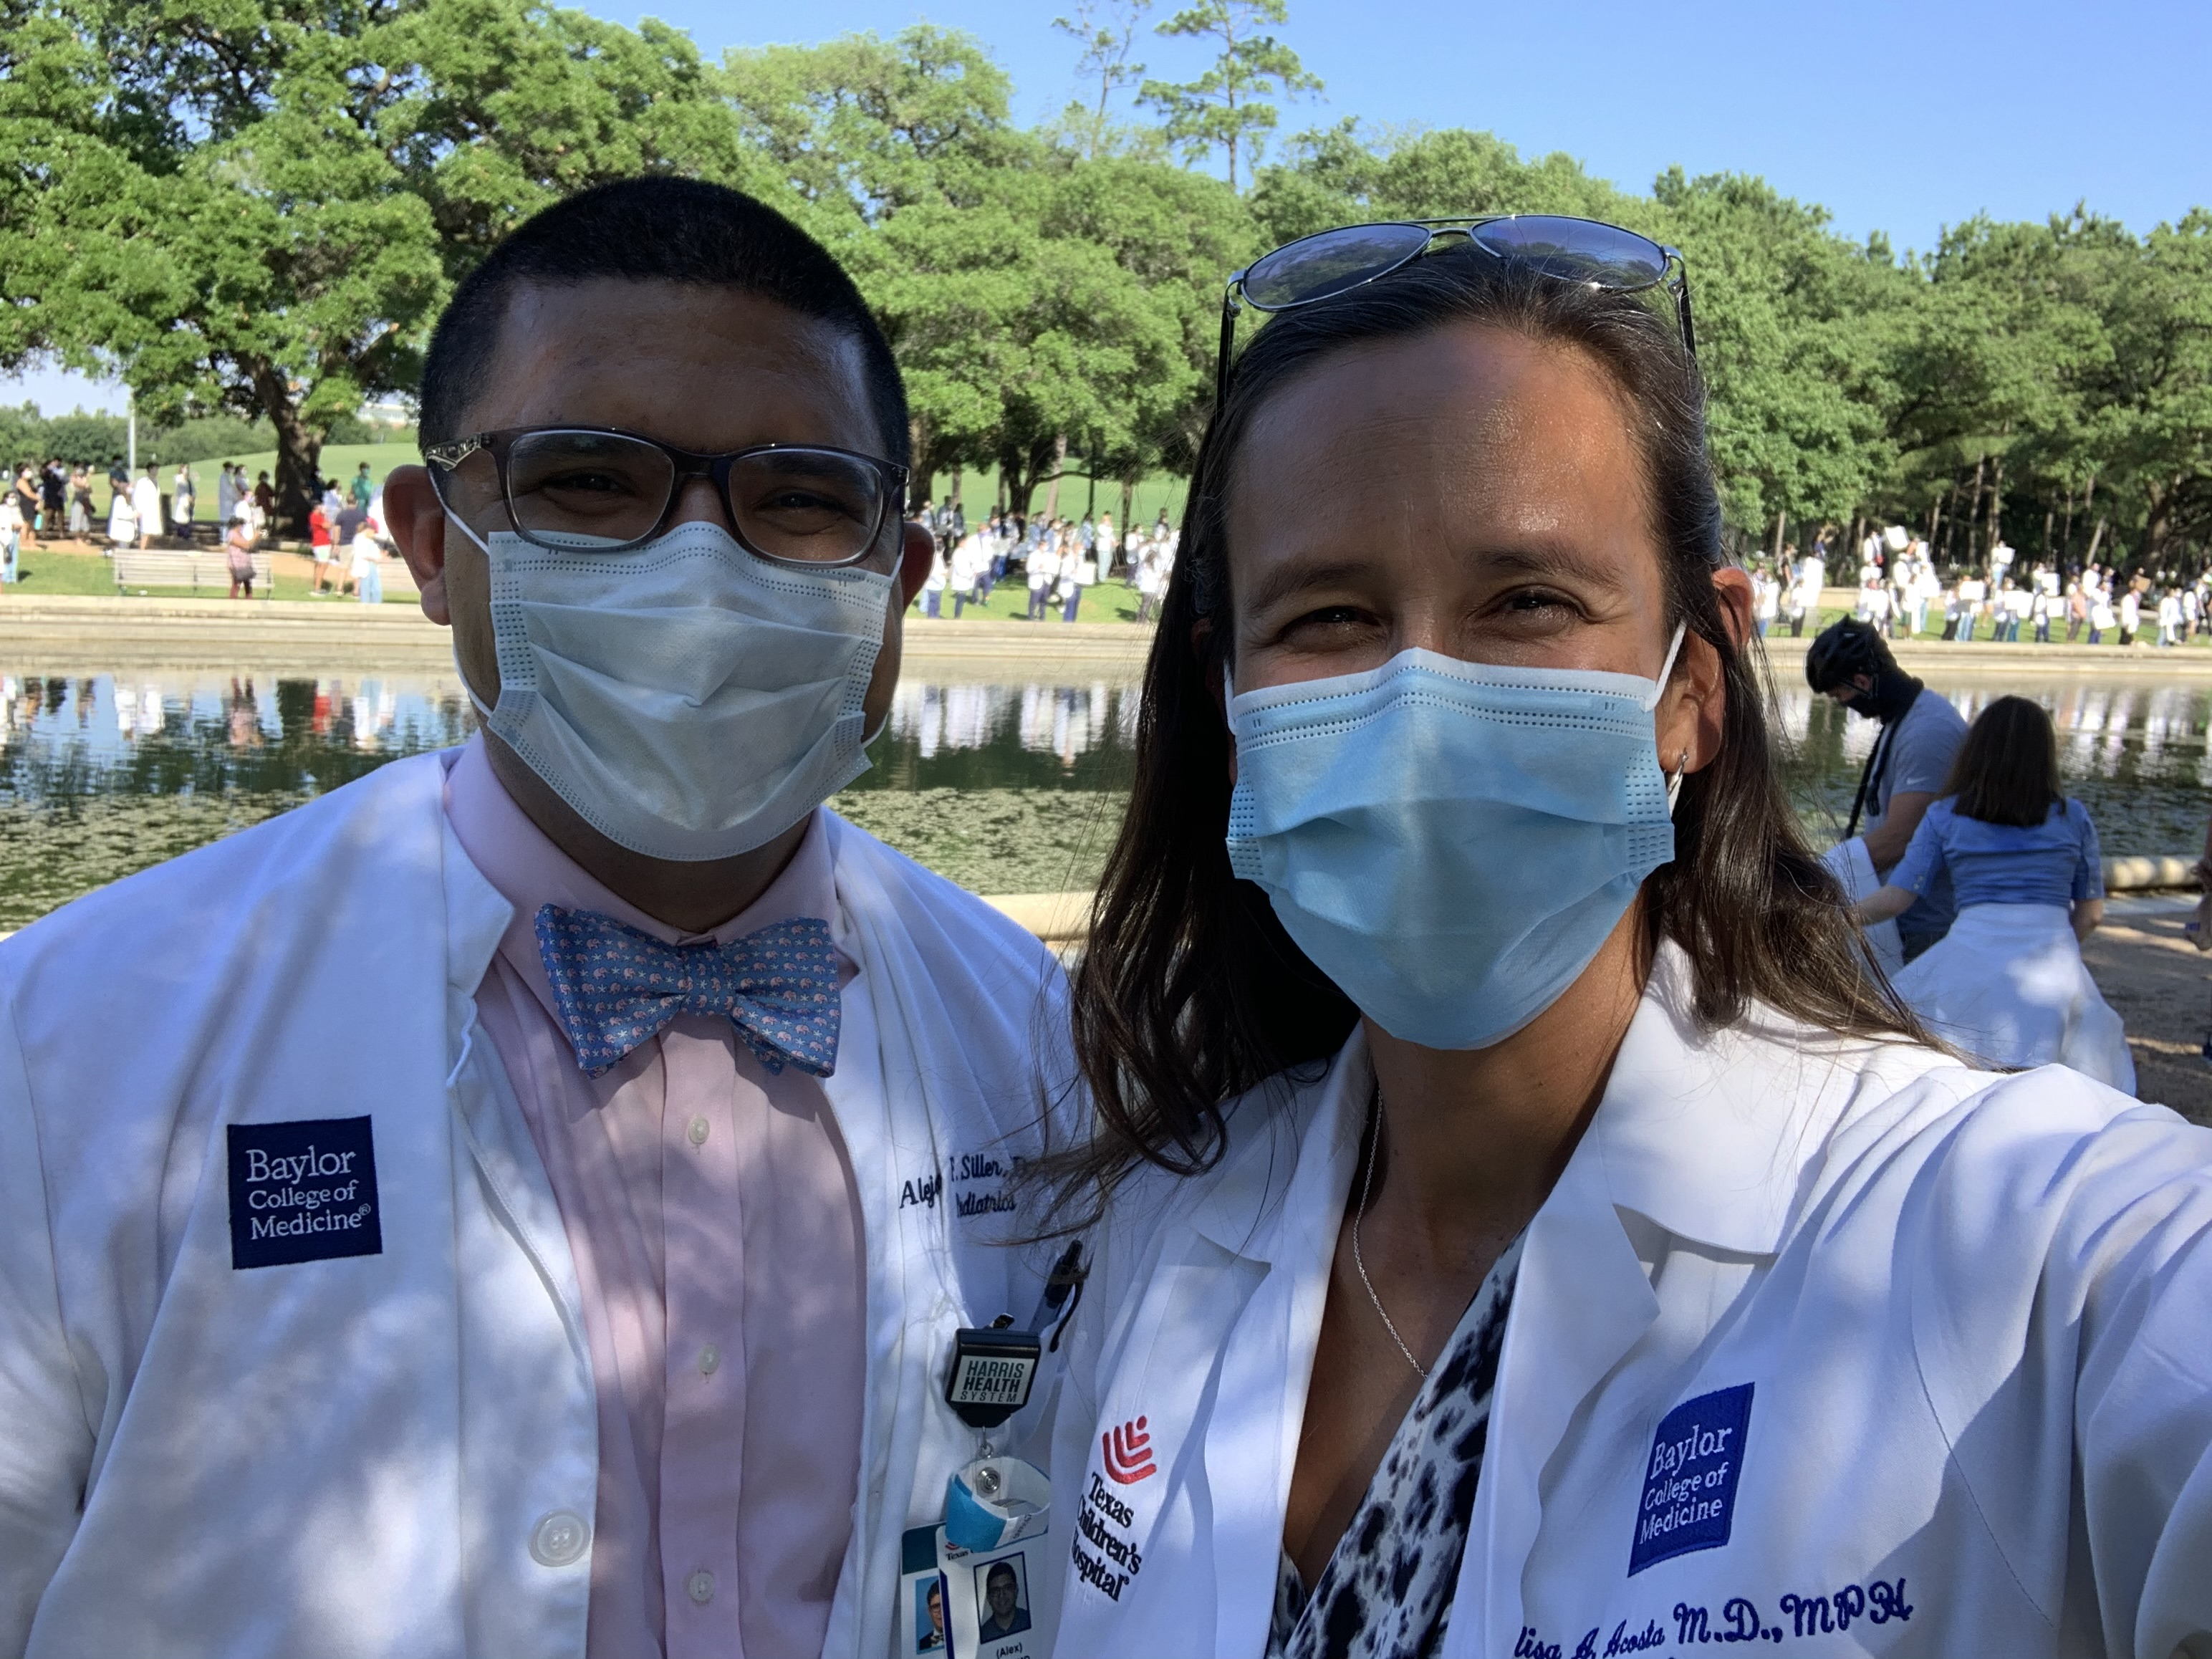 Pediatric Residents, Drs. Acosta and Siller